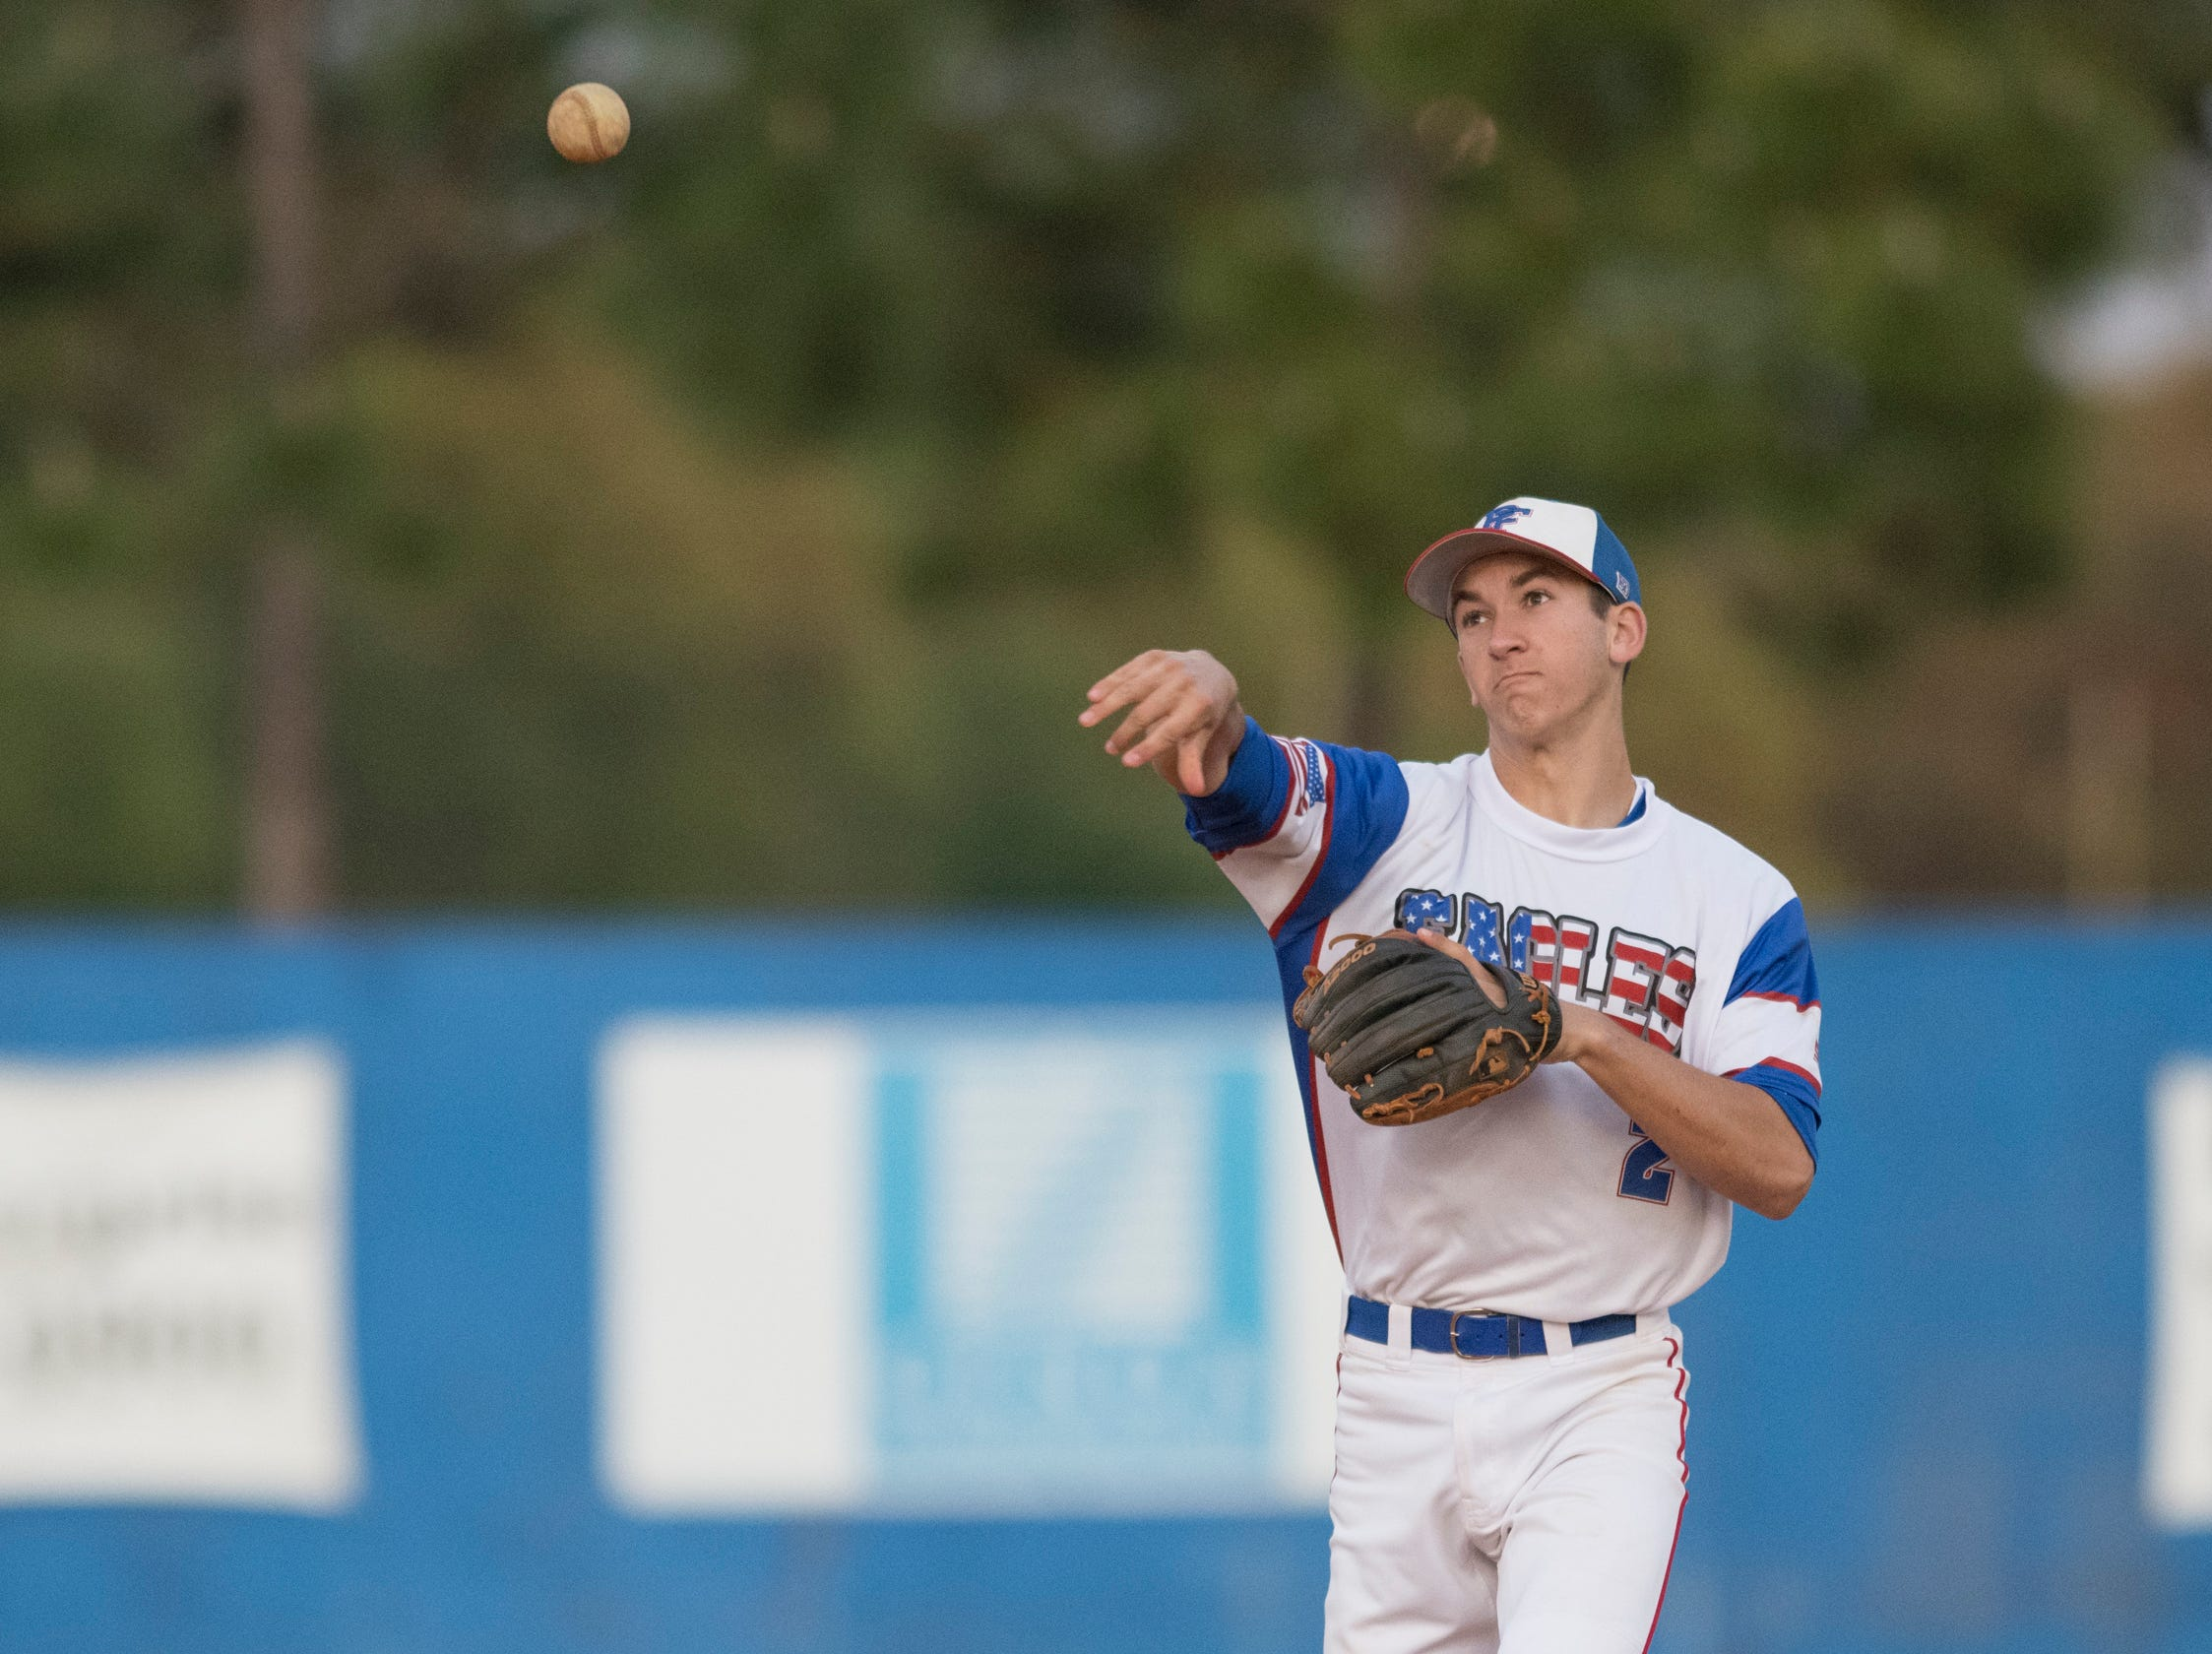 Second baseman John Pinette (2) tosses to first base while warming up in between innings during the Christian Educational Consortium vs Pine Forest baseball game at Pine Forest High School in Pensacola on Wednesday, April 3, 2019.